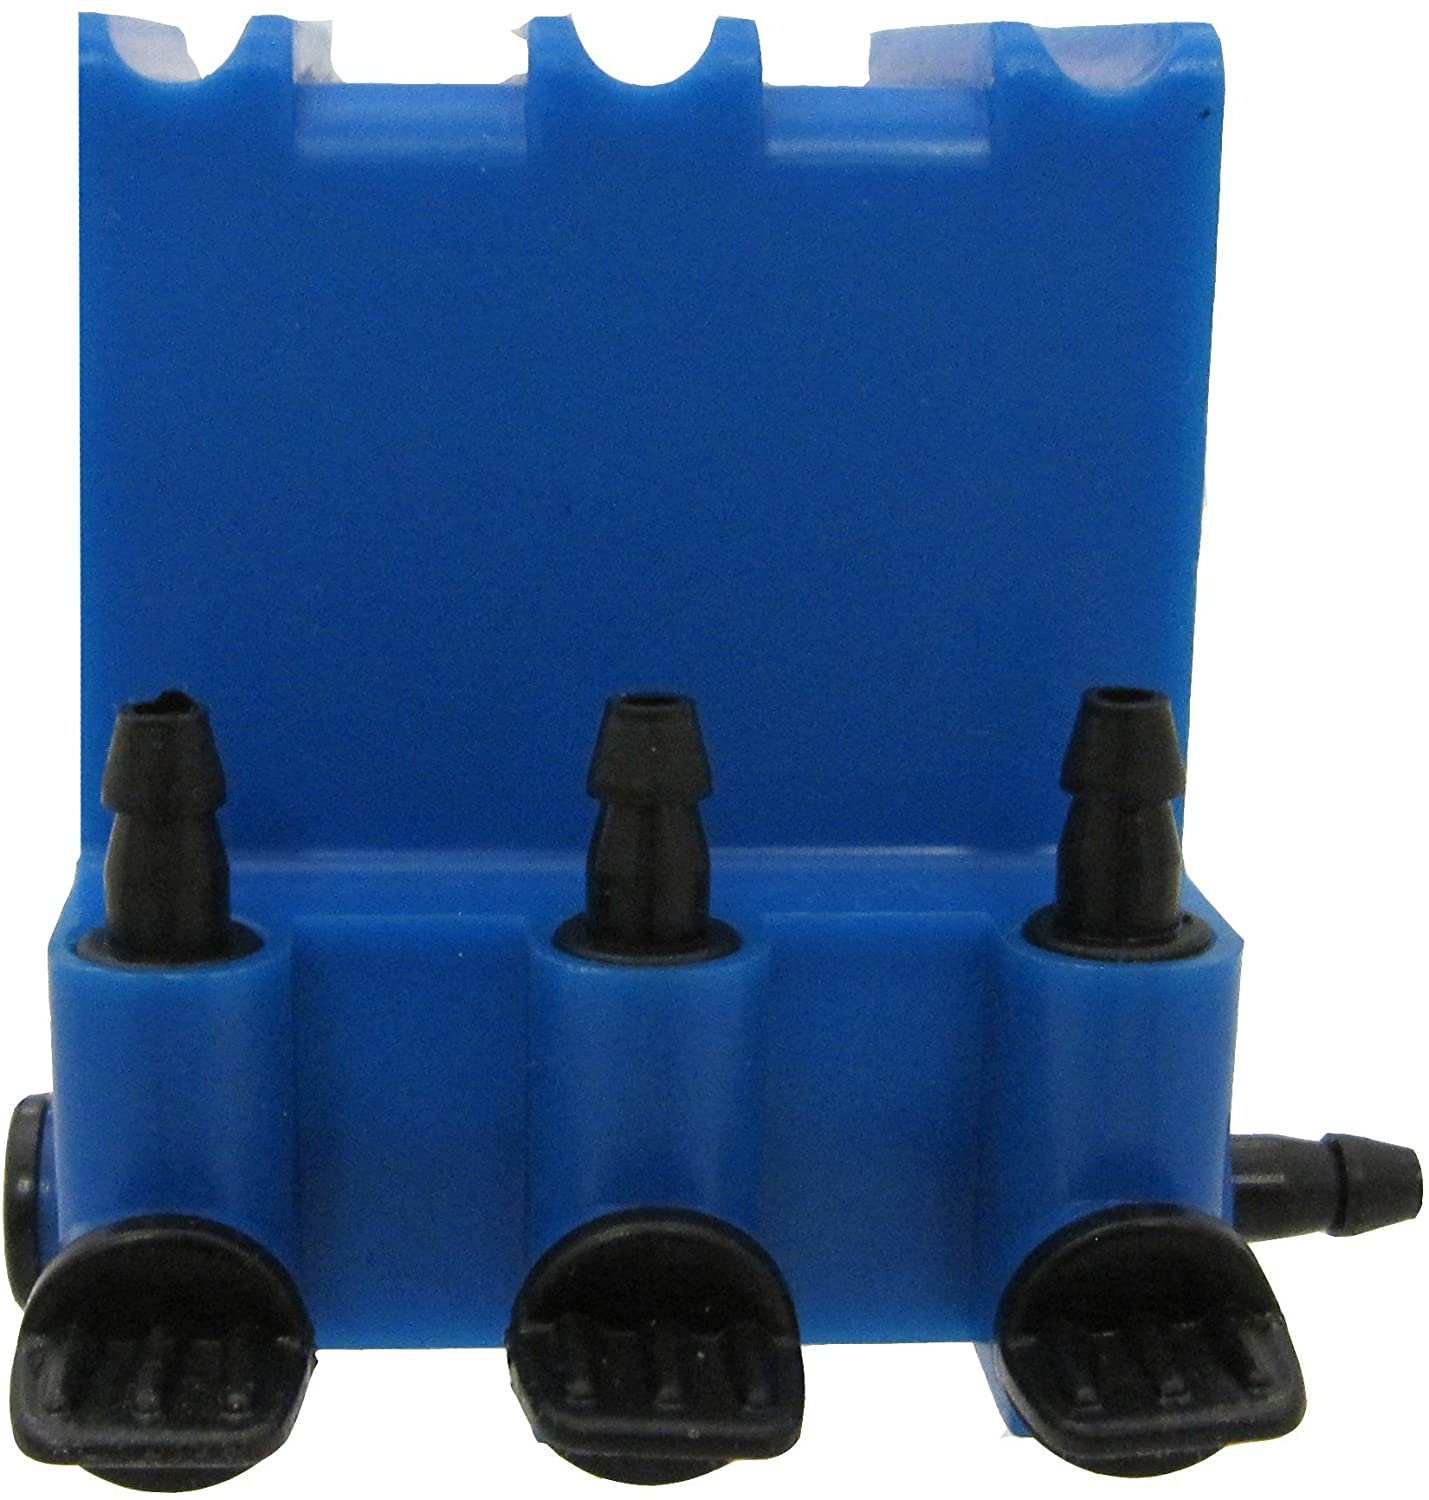 2 Pack 3 Way Gang Valve Professional Edition for Aquariums, Terrariums, and Hydroponics